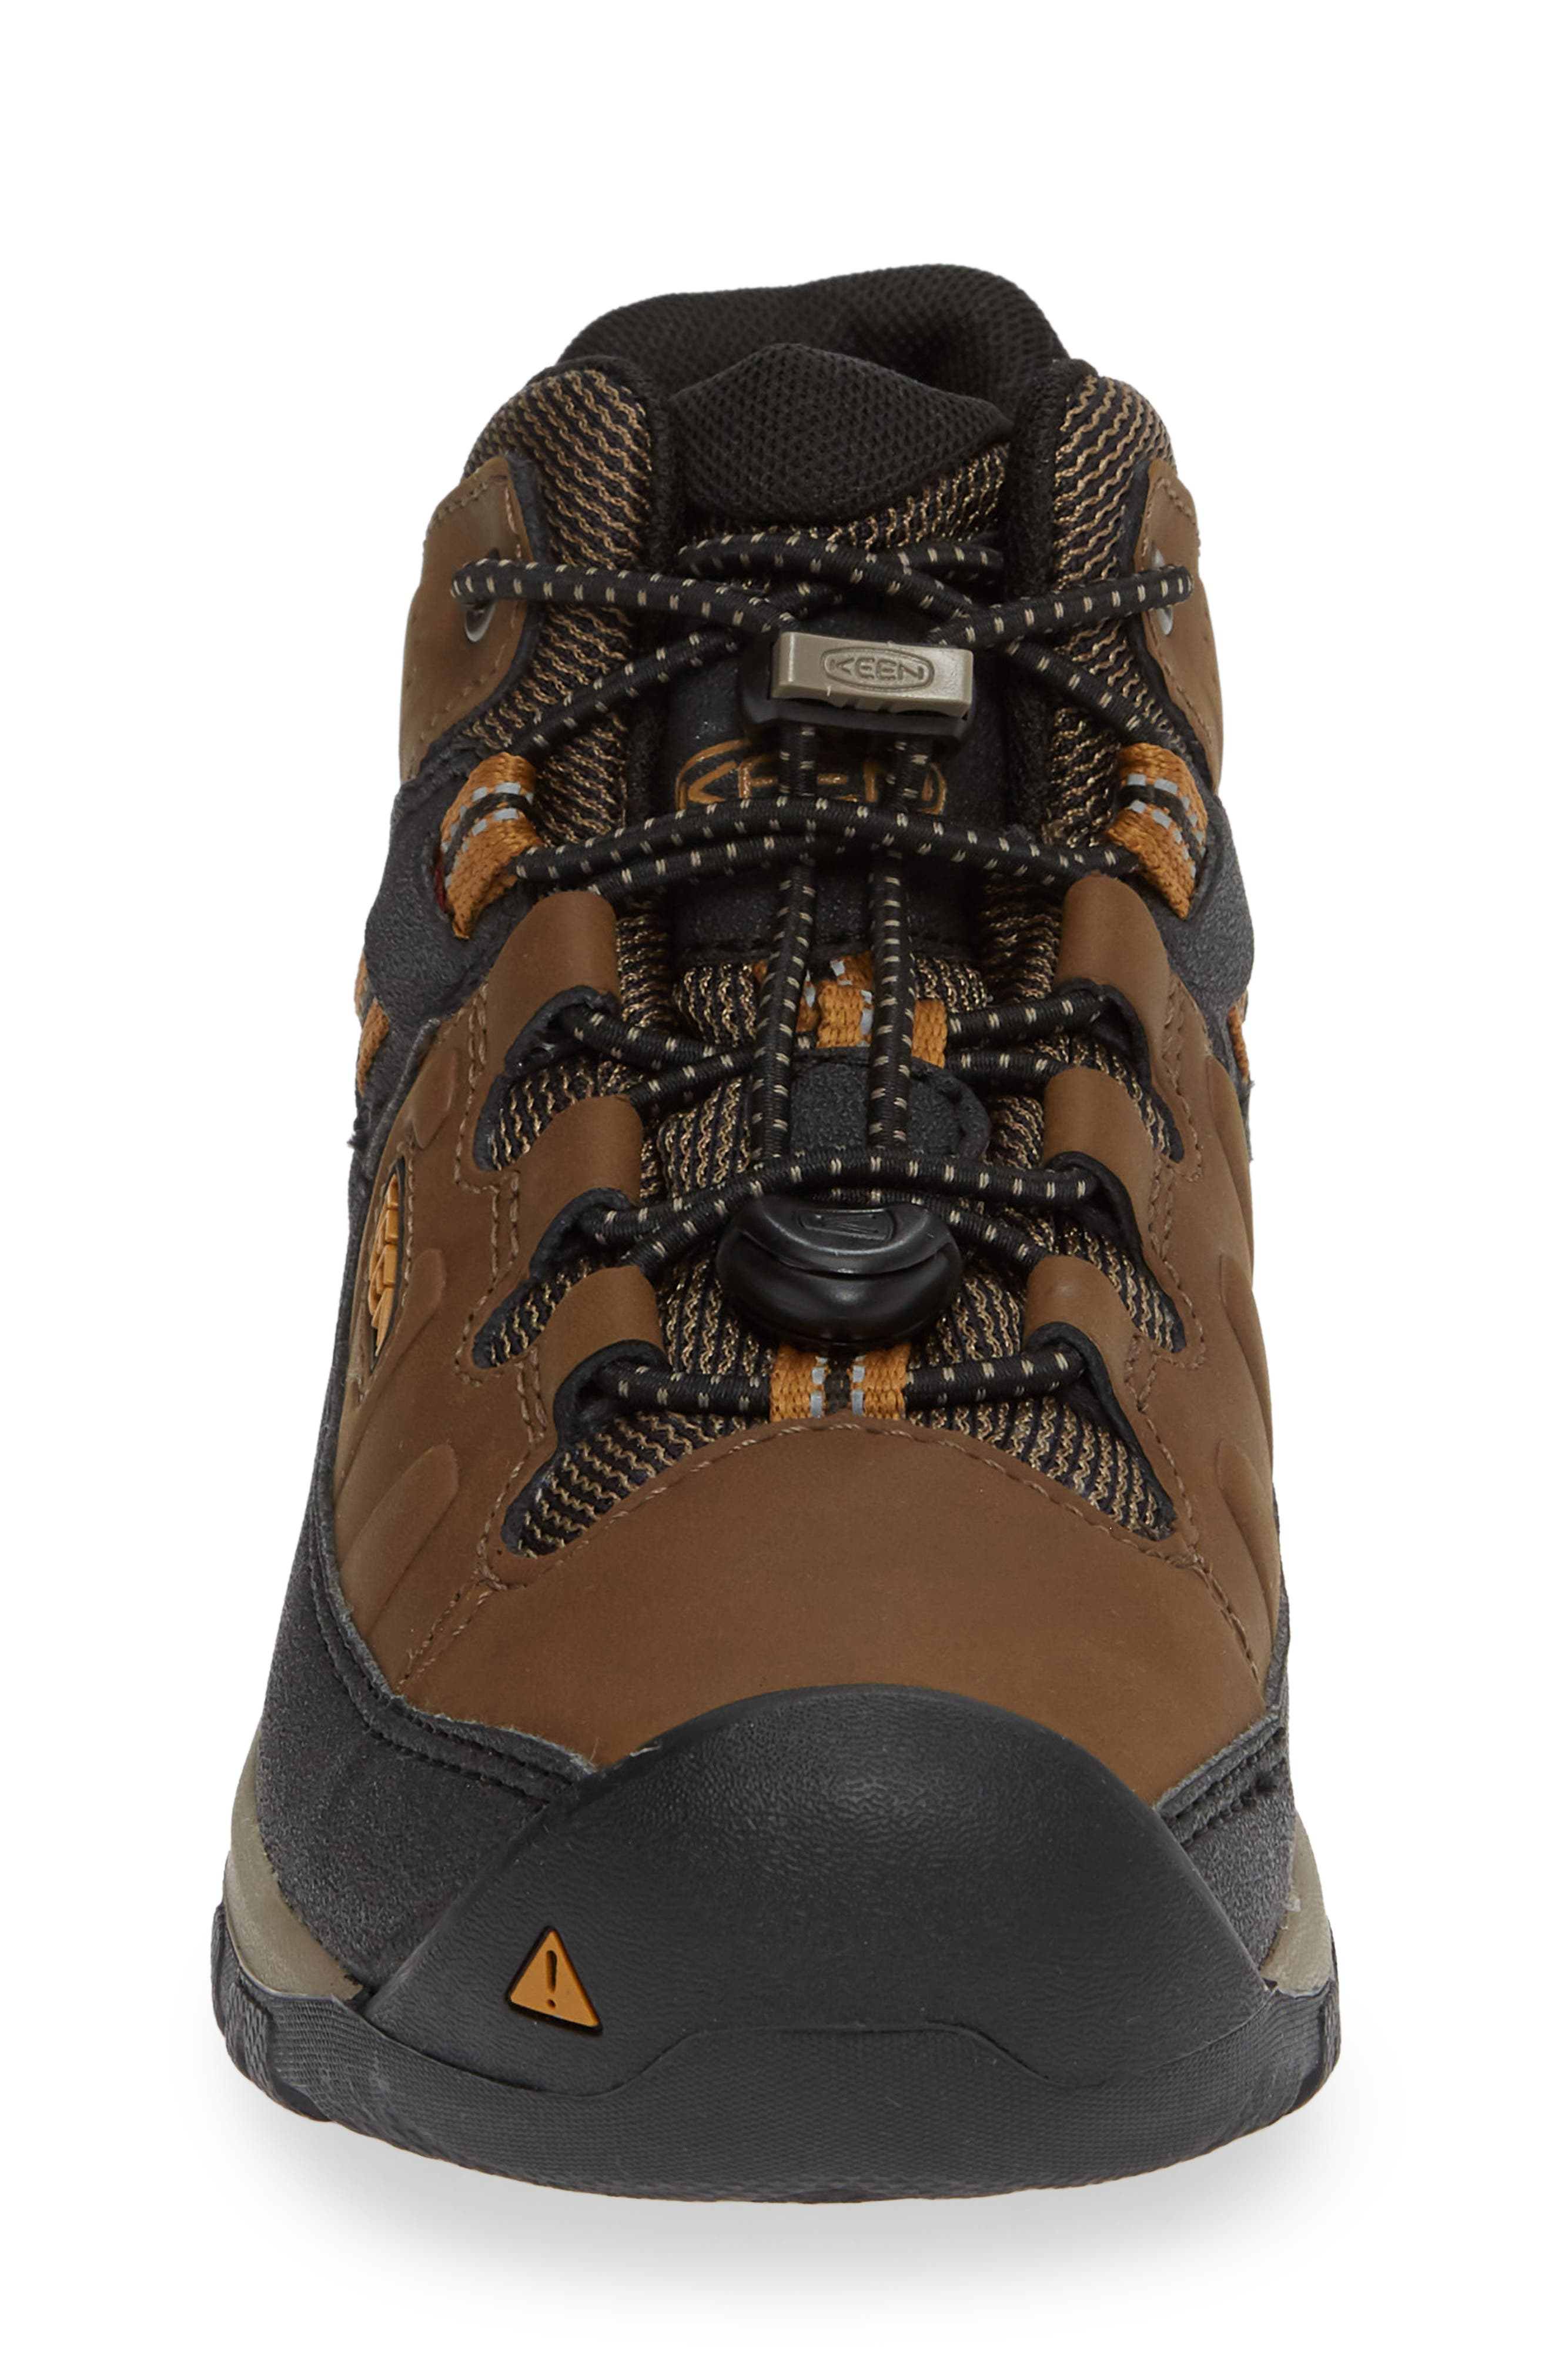 Targhee Mid Waterproof Hiking Boot,                             Alternate thumbnail 4, color,                             DARK EARTH/ GOLDEN BROWN